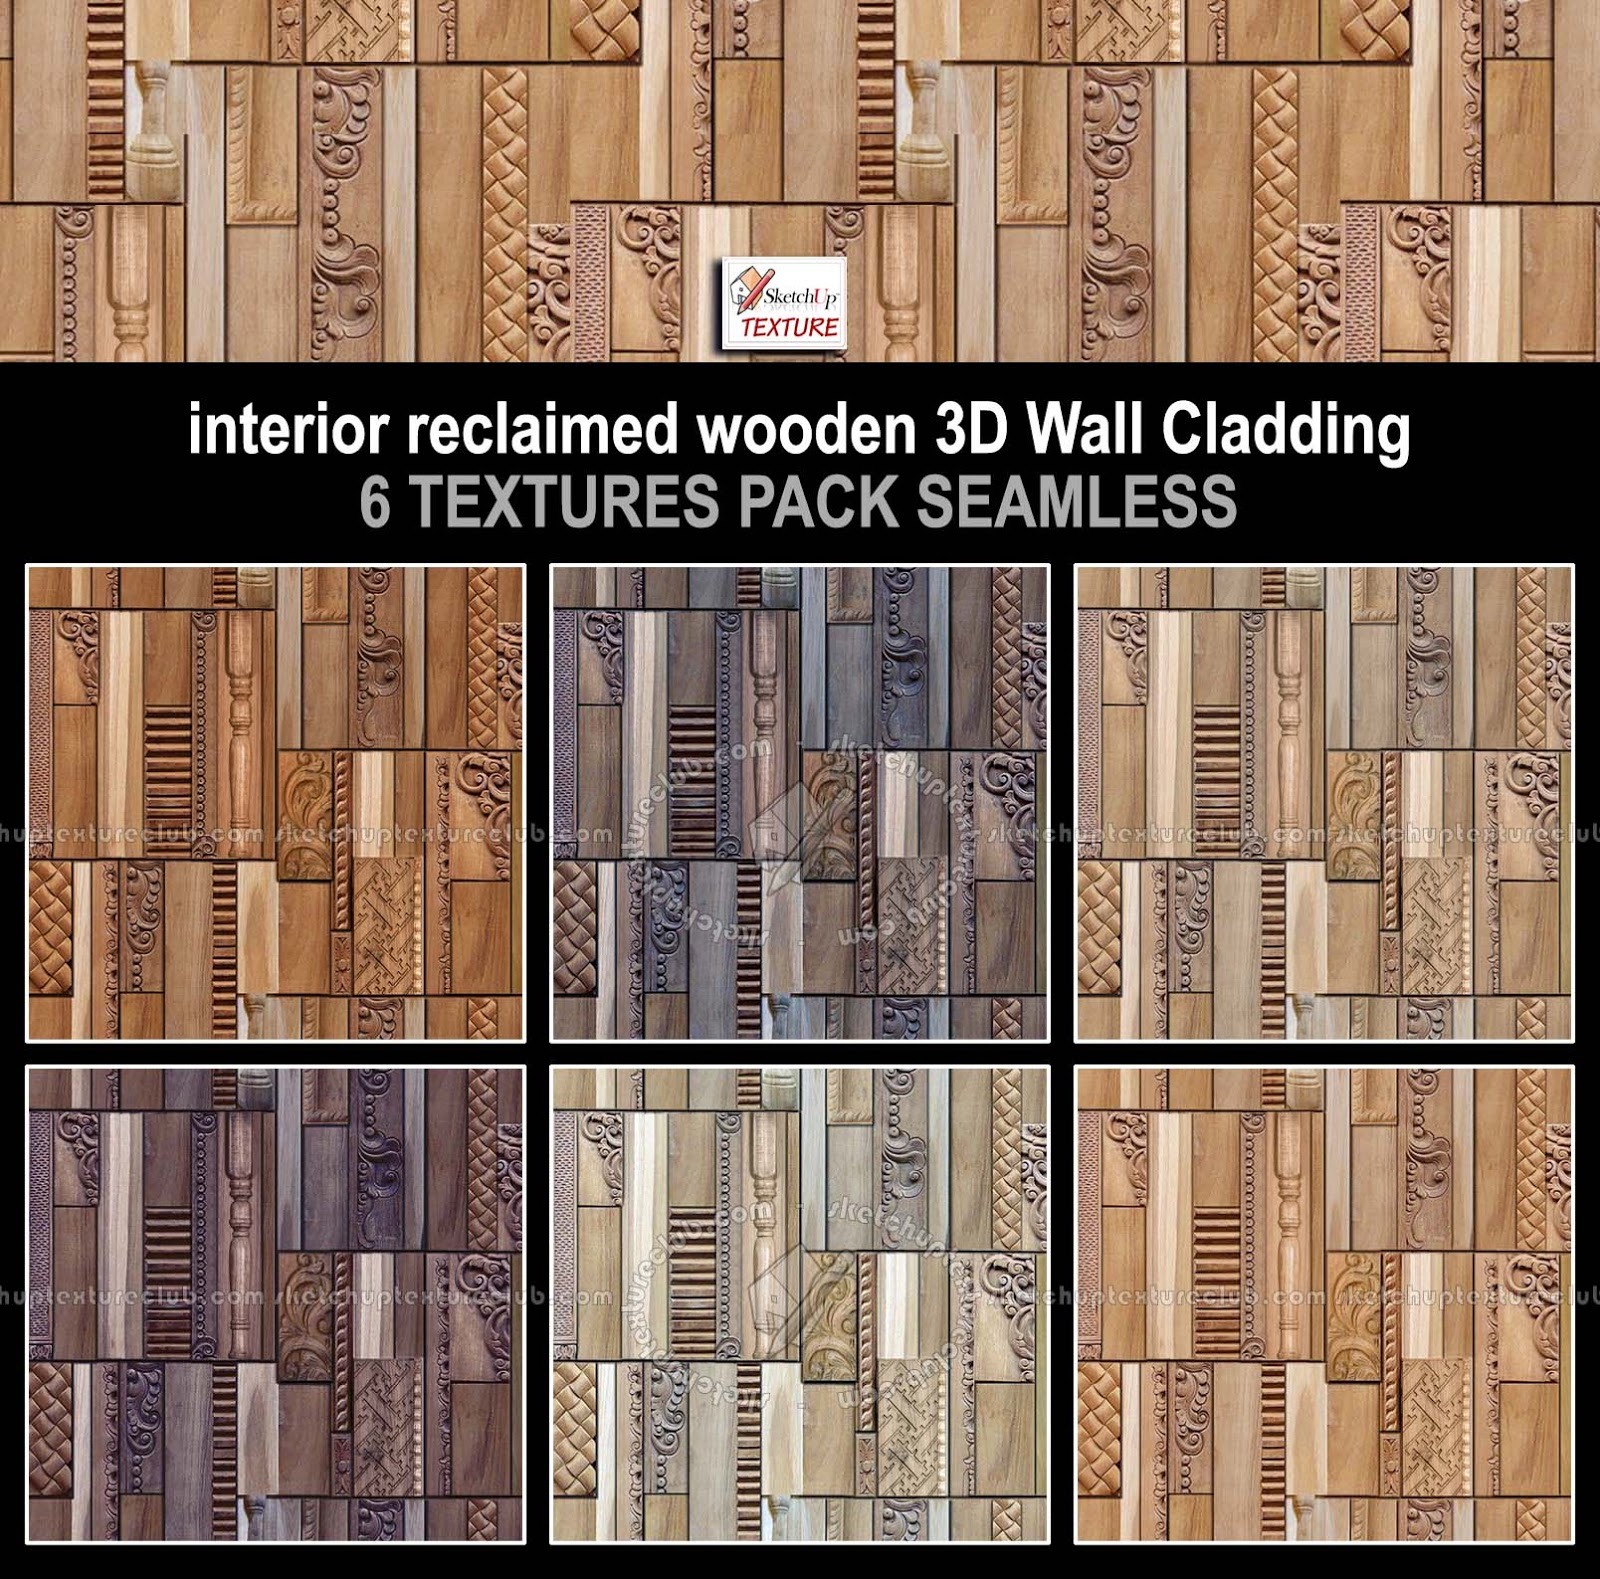 Inspirations wood floors texture sketchup texture update news wood - It Is Forbidden To Upload Our Material Available